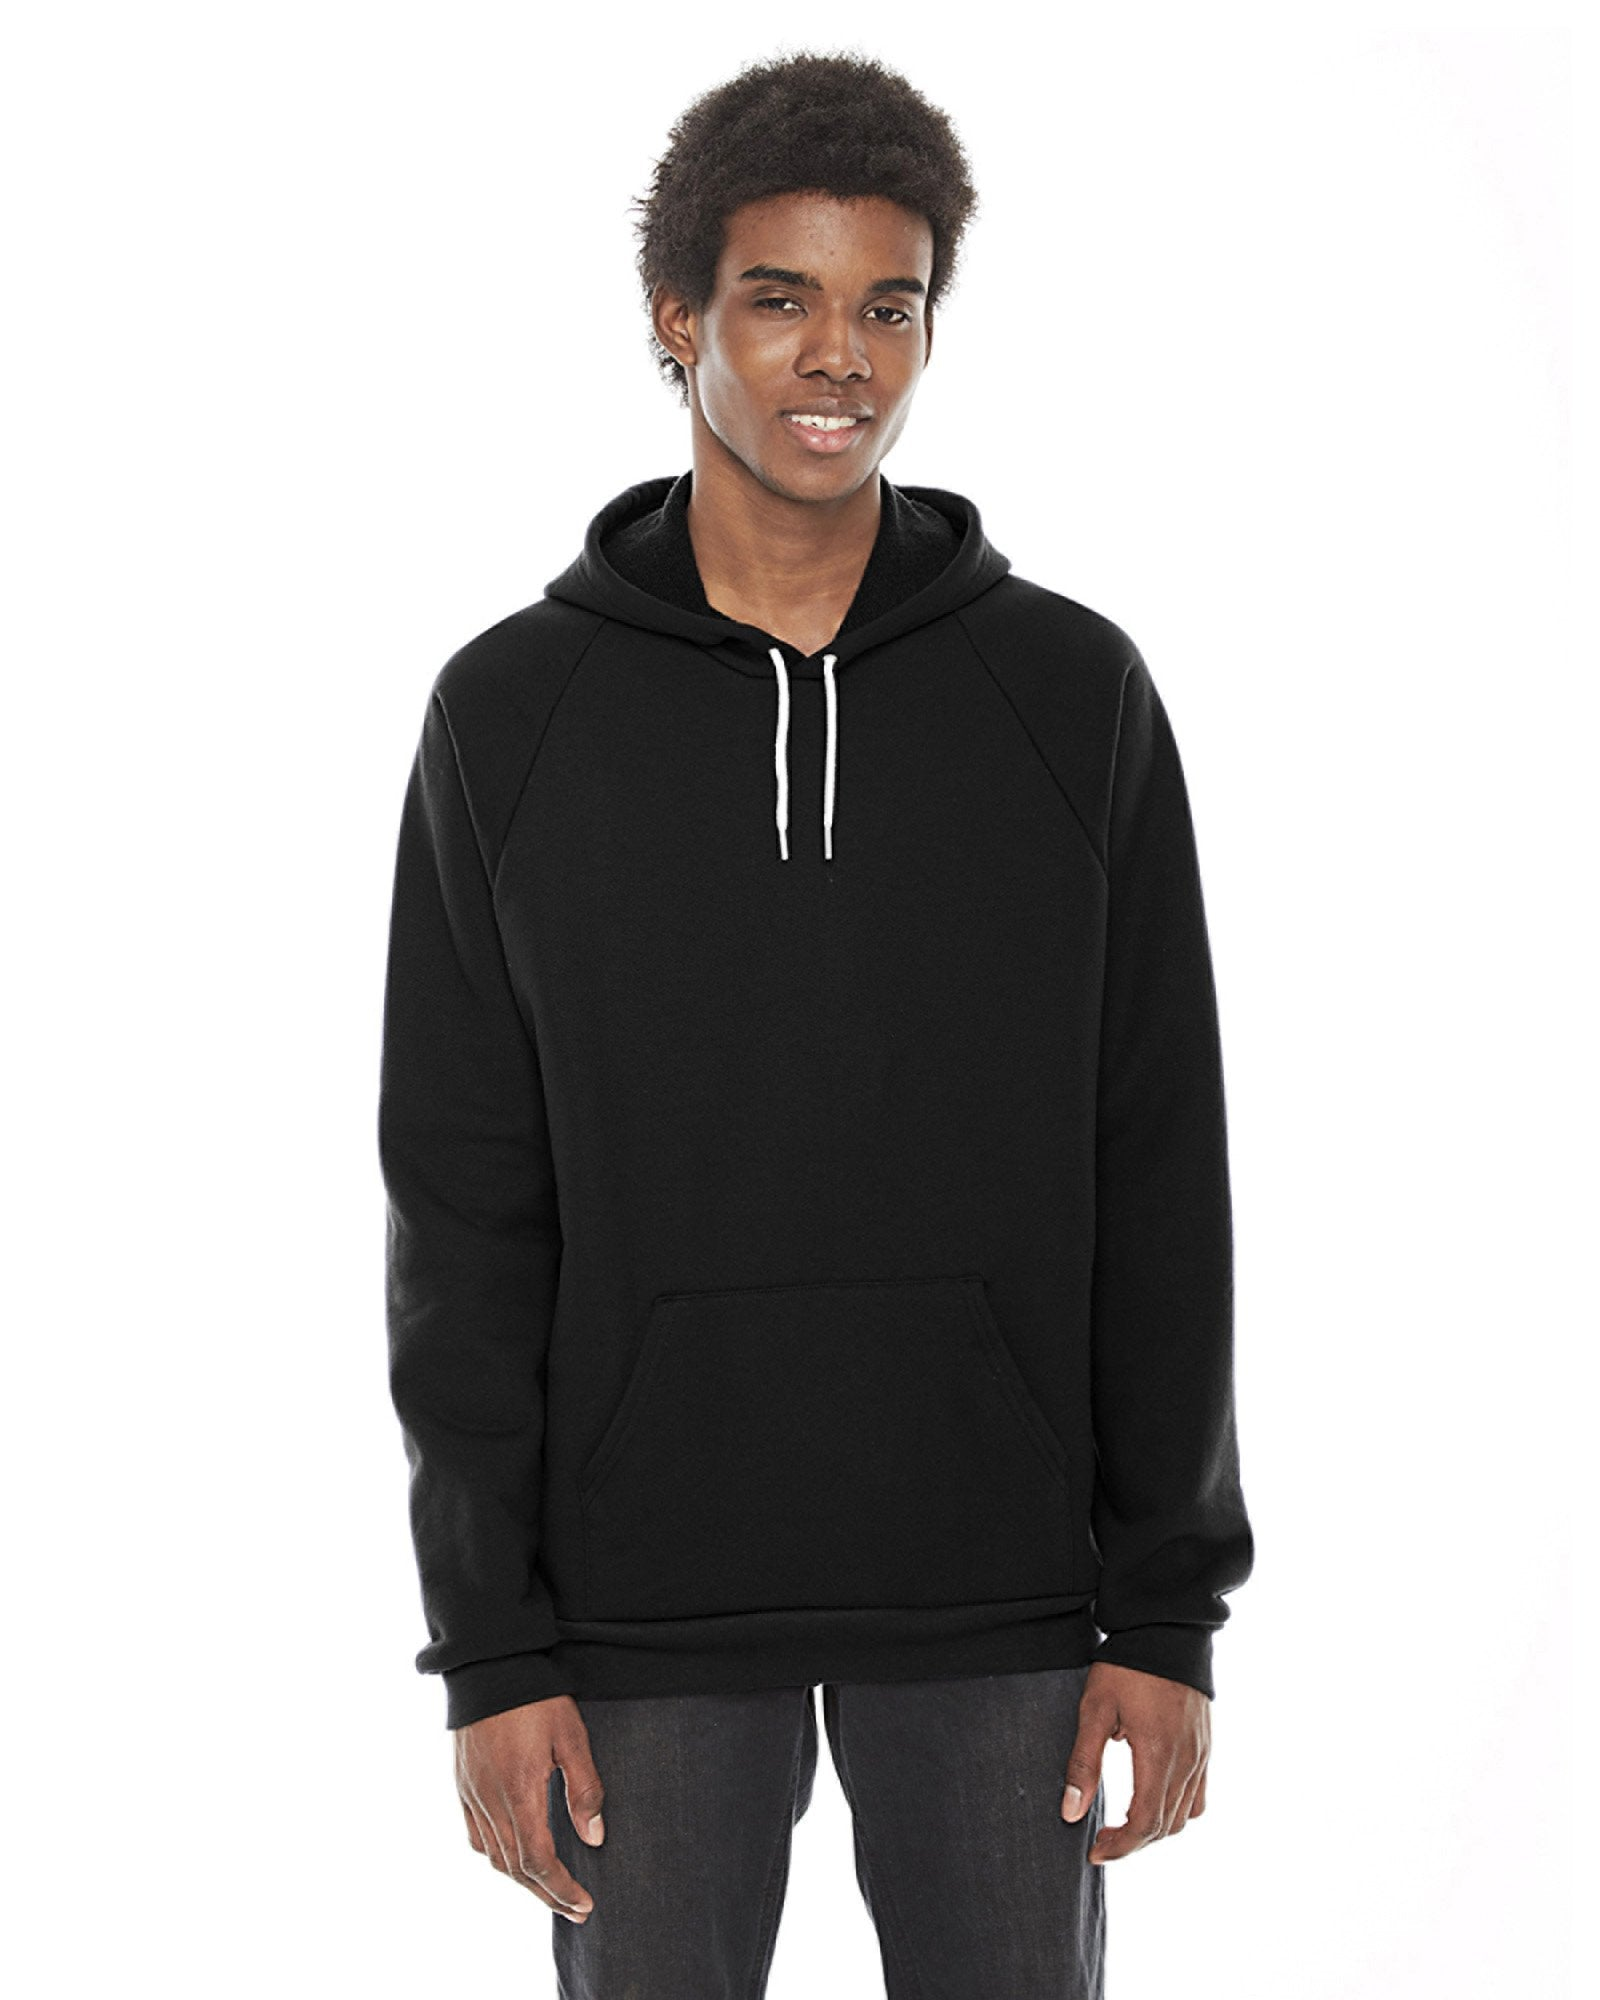 American Apparel - HVT495 - Unisex Classic Pullover Hoodie